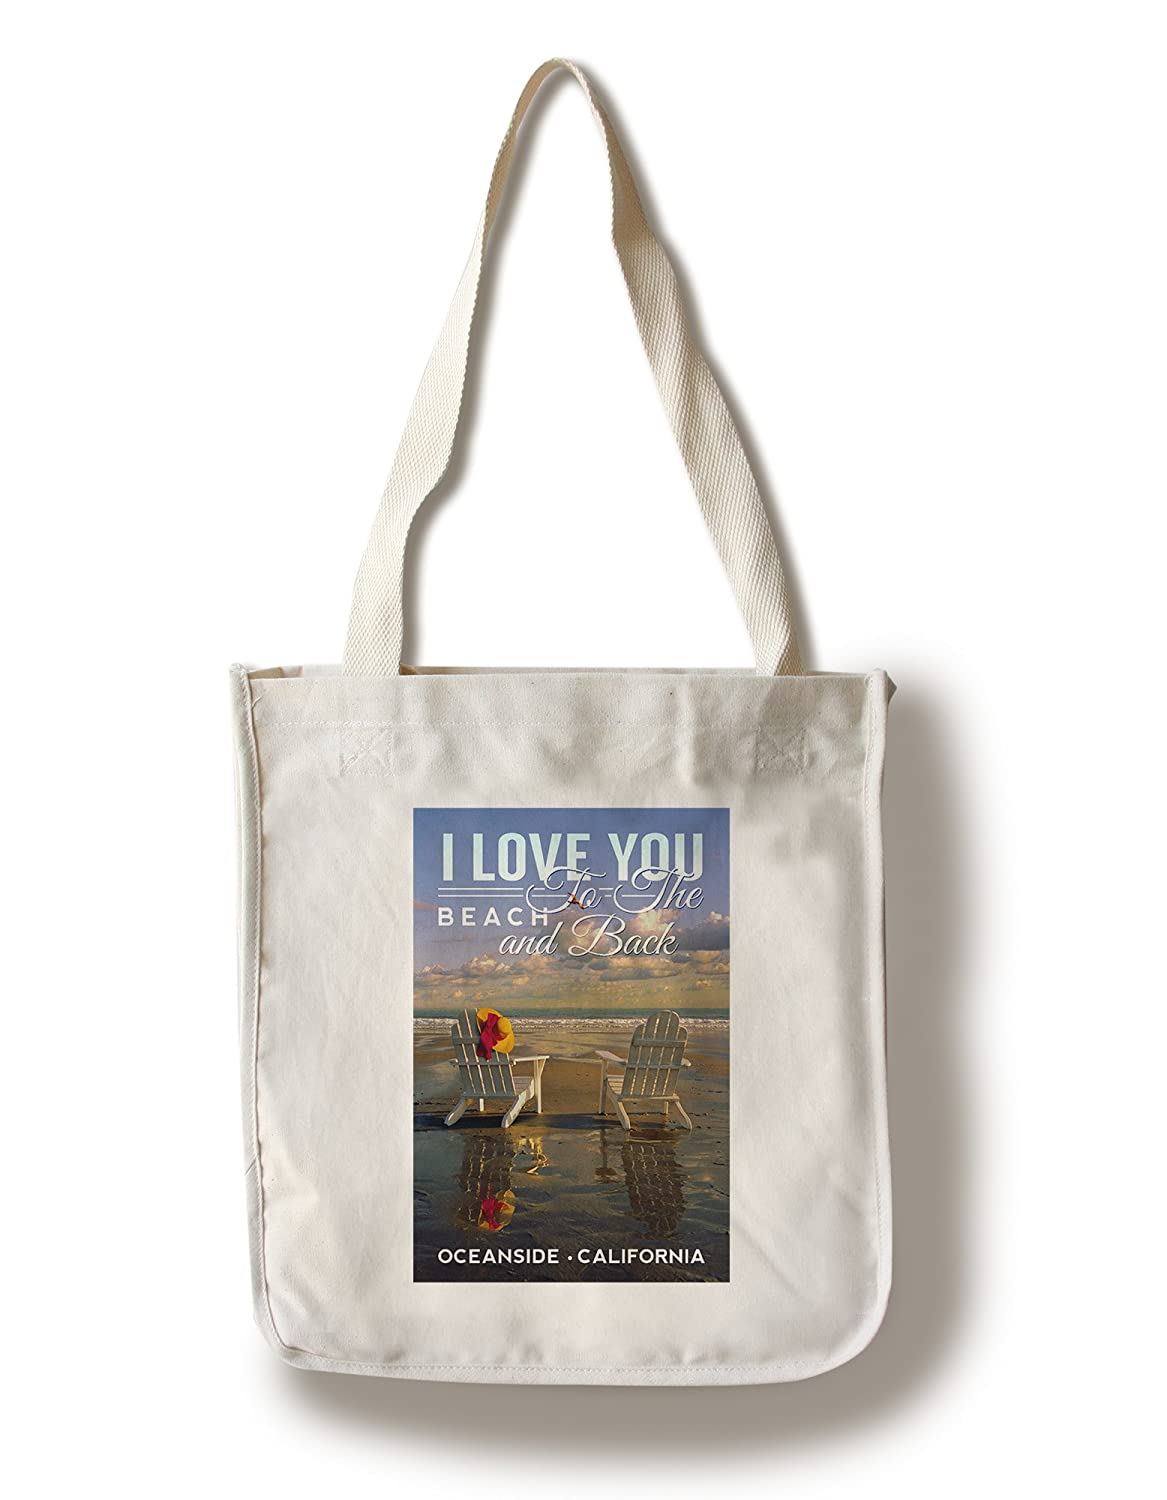 オーシャンサイド、カリフォルニア – アディロンダック椅子 – I Love You To The Beach and Back Canvas Tote Bag LANT-80904-TT B072PZ8RPF  Canvas Tote Bag